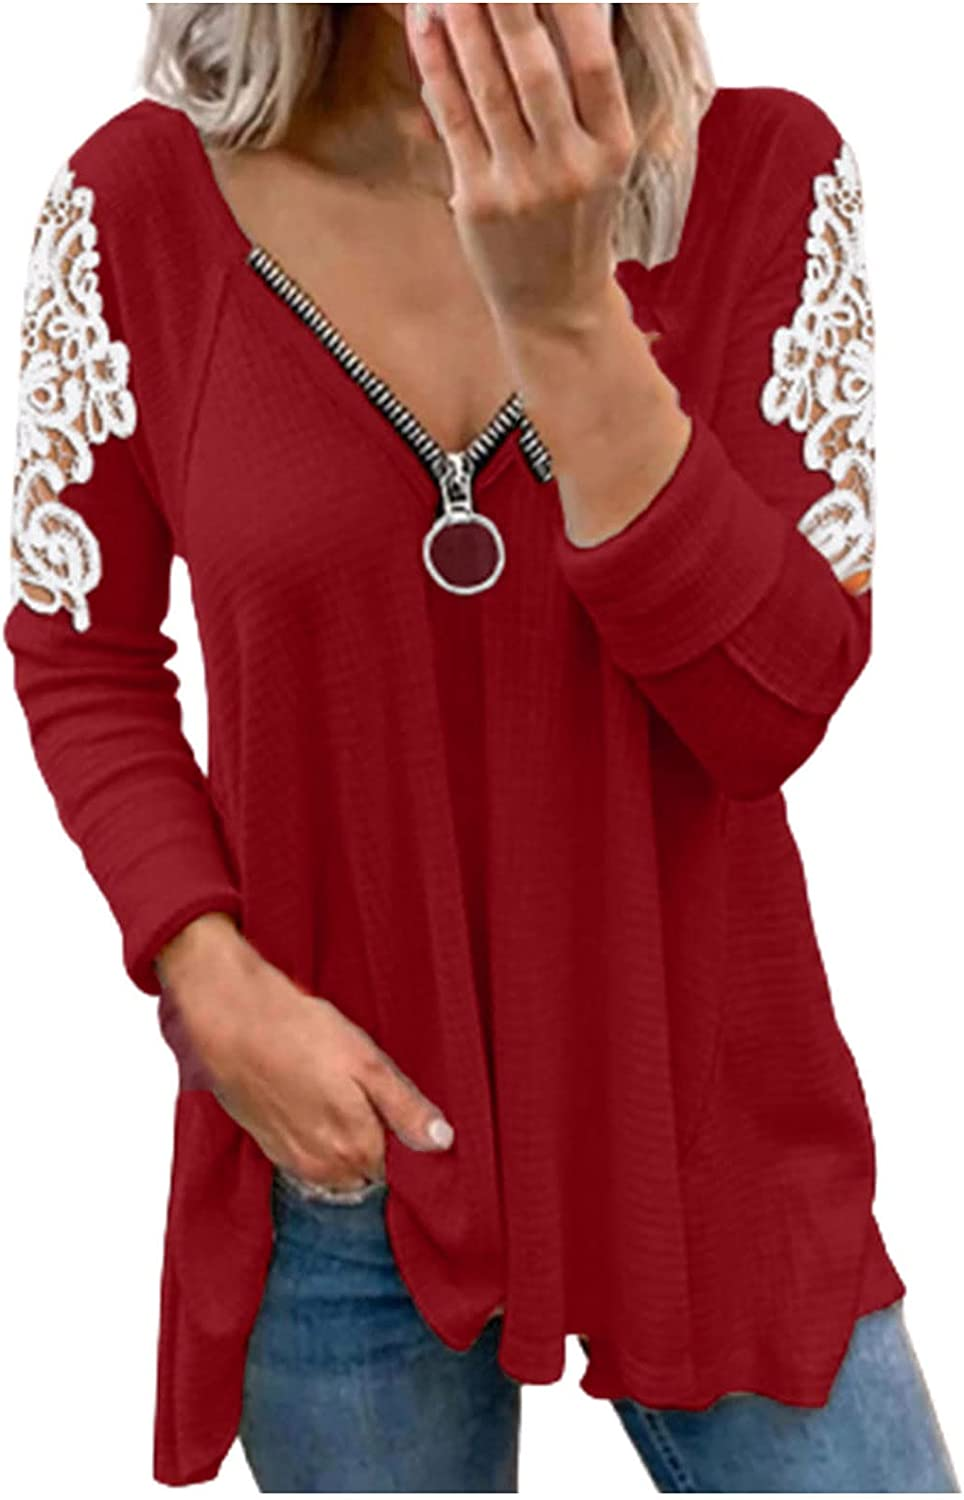 Womens Long Sleeve Tops, Women's Solid Color Patchwork Long Sleeve V-Neck Loose Shirt Blouse Top